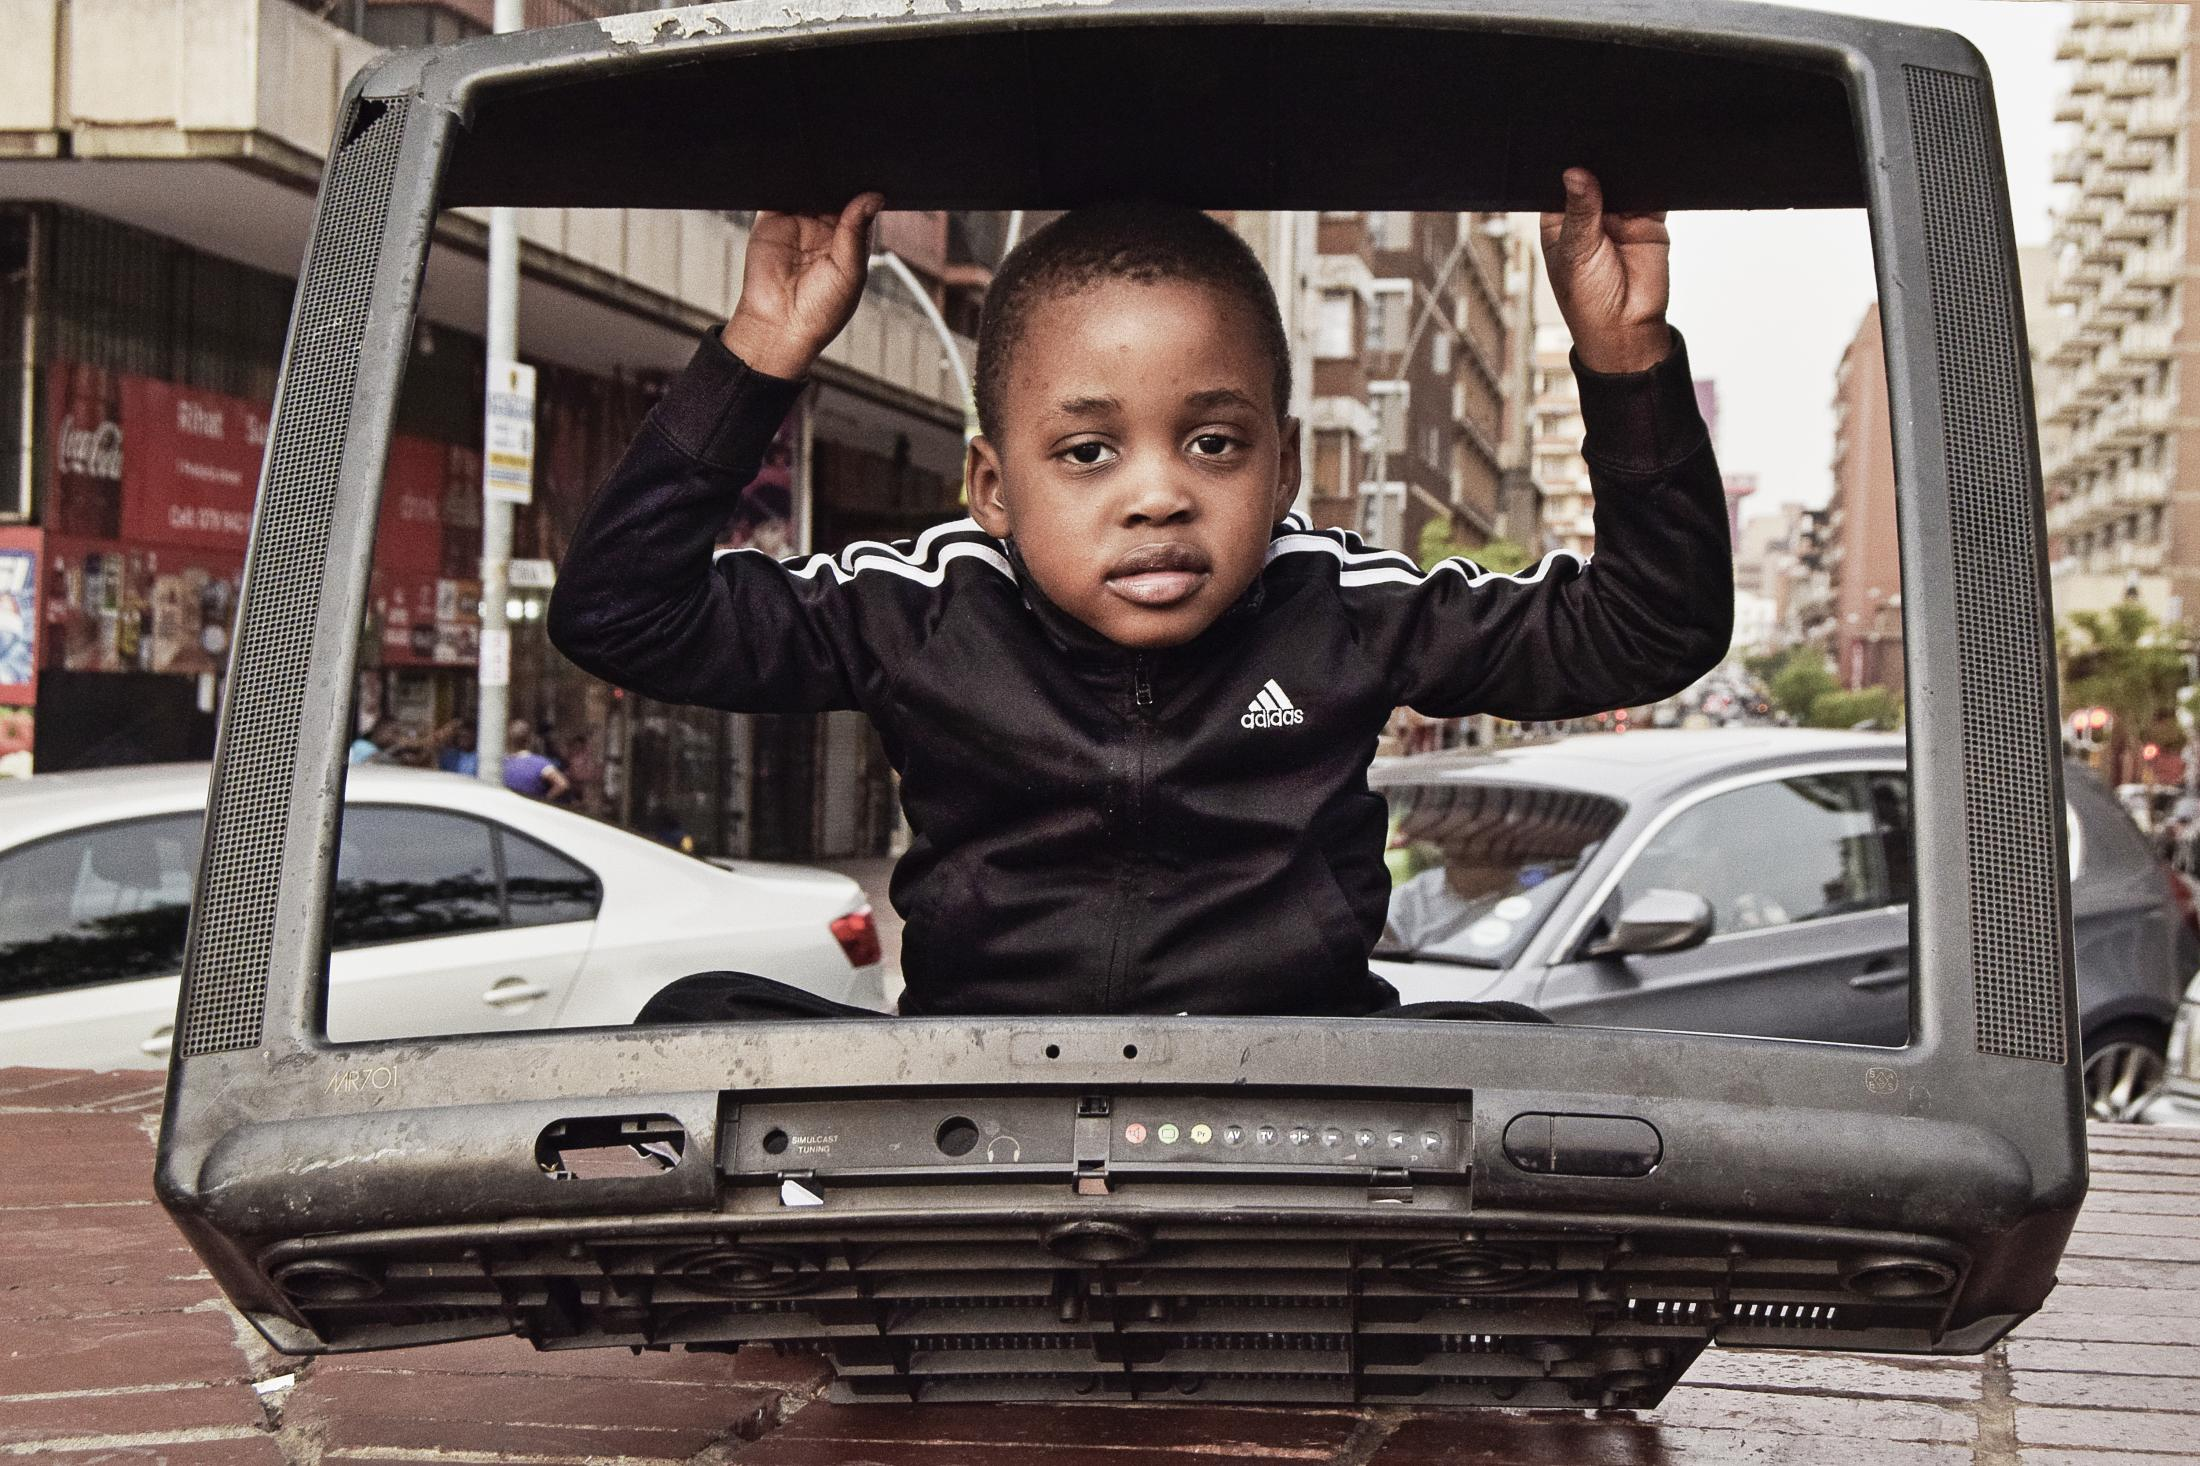 "A young boy plays in the frame of broken television set at Pretoria street in Hillbrow on Sept 15, 2015. Pretoria street is one of the most famous street in Hillbrow with many businesses both formal and informal. Hillbrow is an inner city residential neighbourhood of Johannesburg known for its high level of populationdensity, unemployment, poverty, prostitution and crime. This project ""Transition"" looks at the short and long-term changes that have occured and continue to occur in the area, and the effect of life here on the people."""